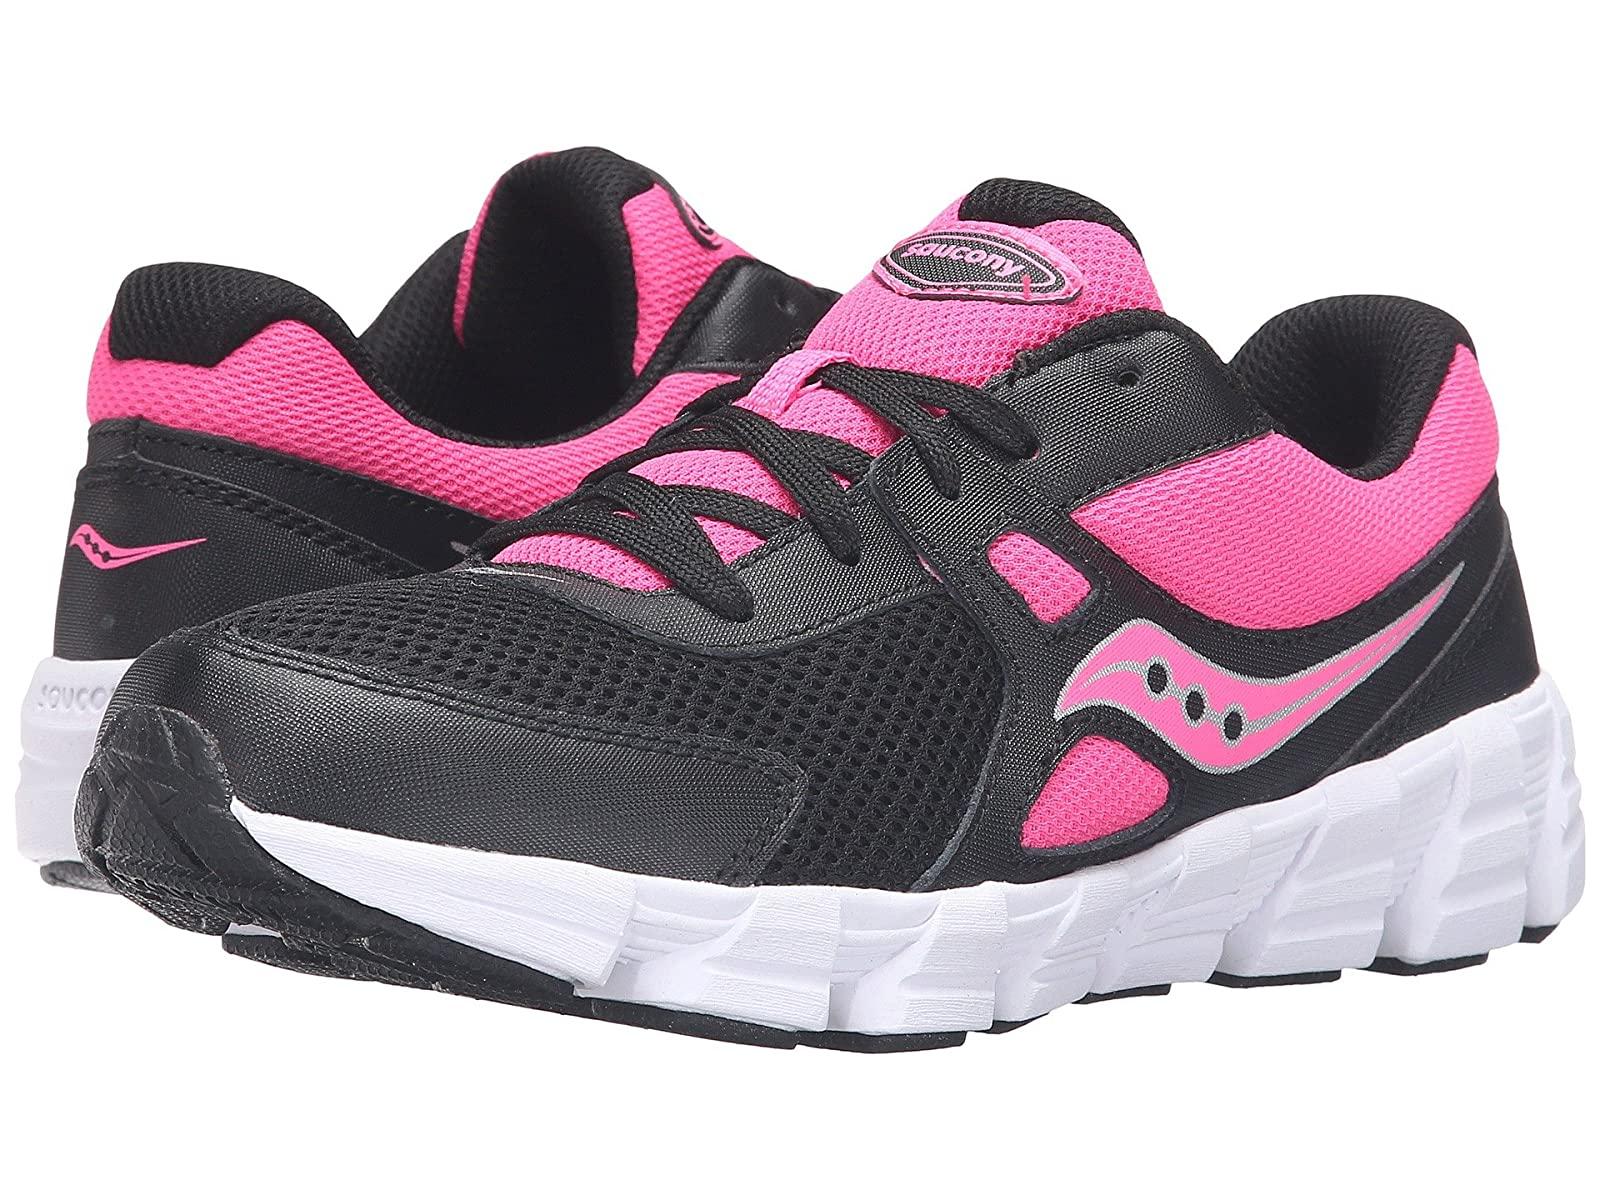 Saucony Kids Vortex (Big Kid)Cheap and distinctive eye-catching shoes